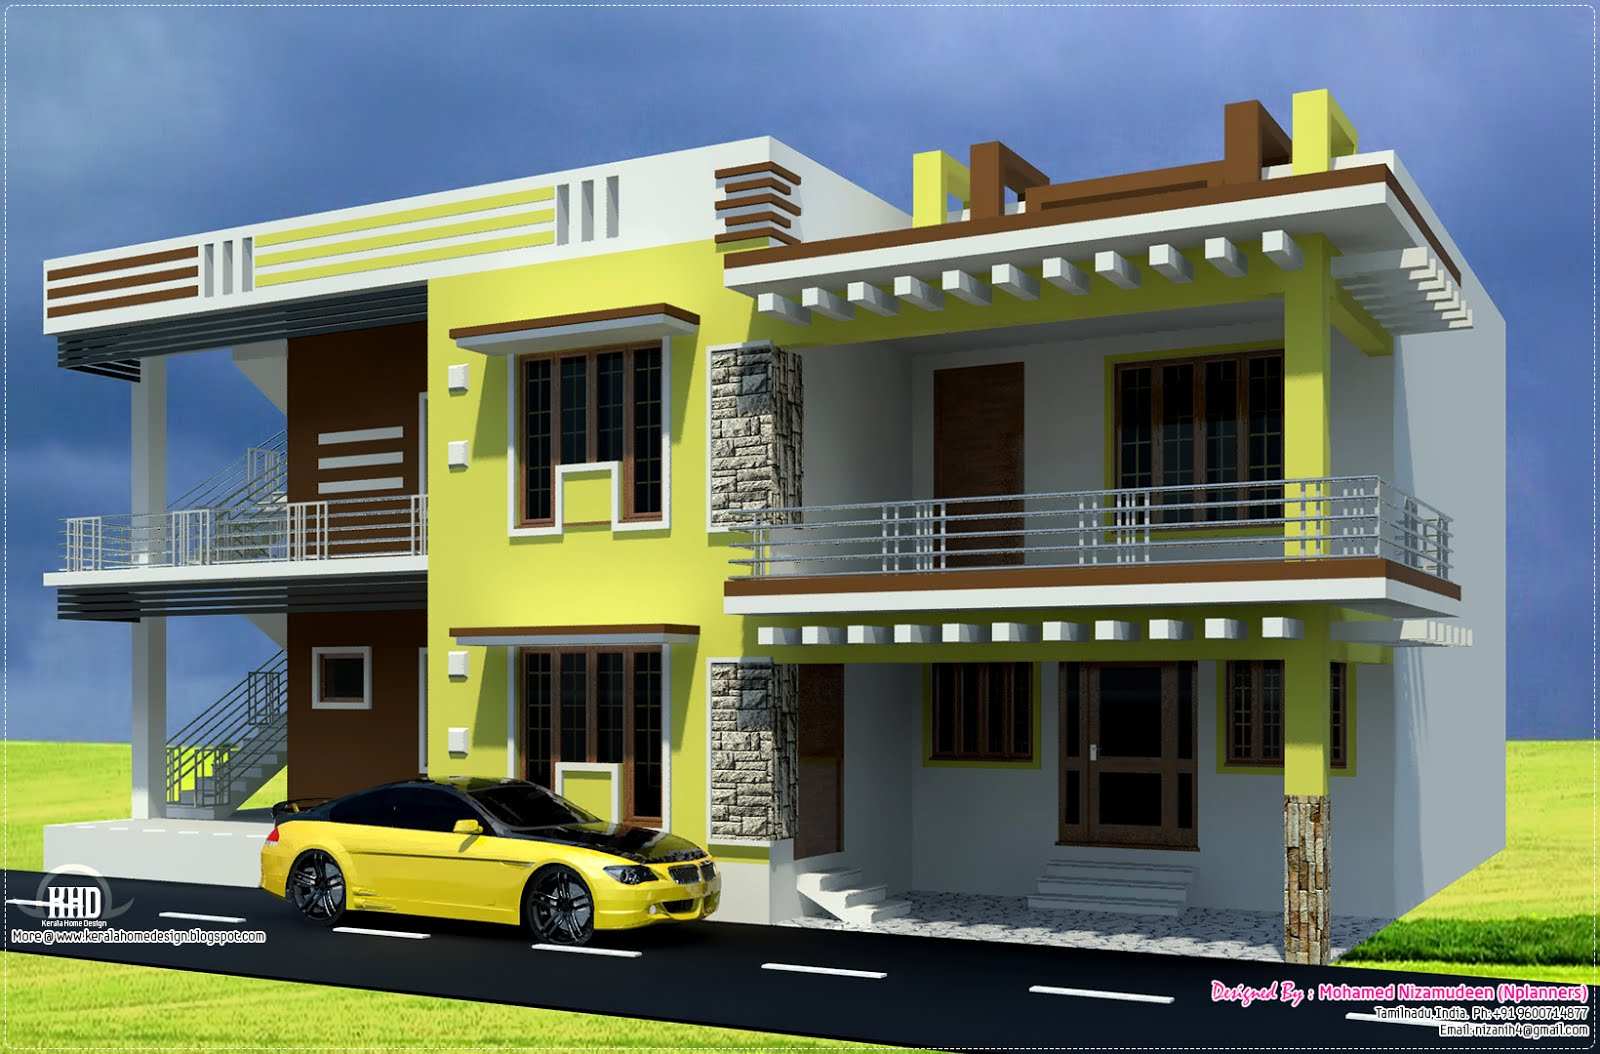 Home Design In India: New Home Design: South Indian Home Design In 2700 Sq.feet